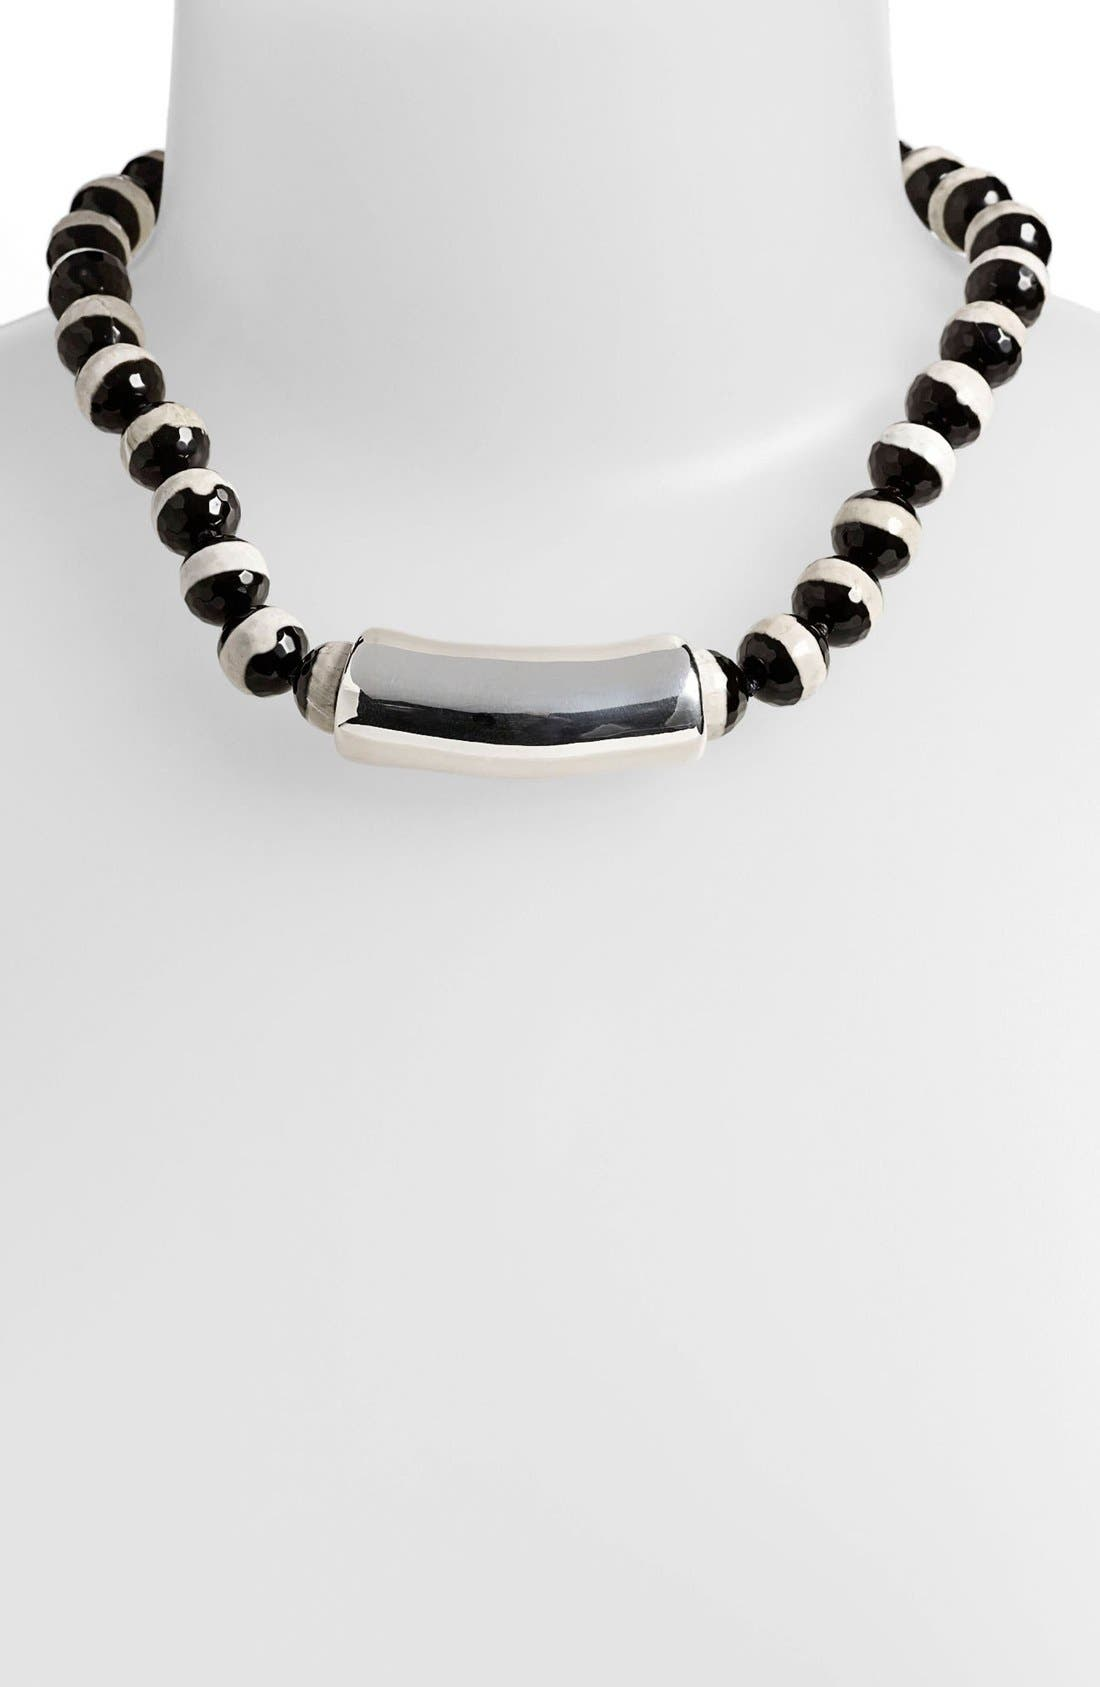 Main Image - Simon Sebbag 'Contemporary' Stone Necklace with Center Bead